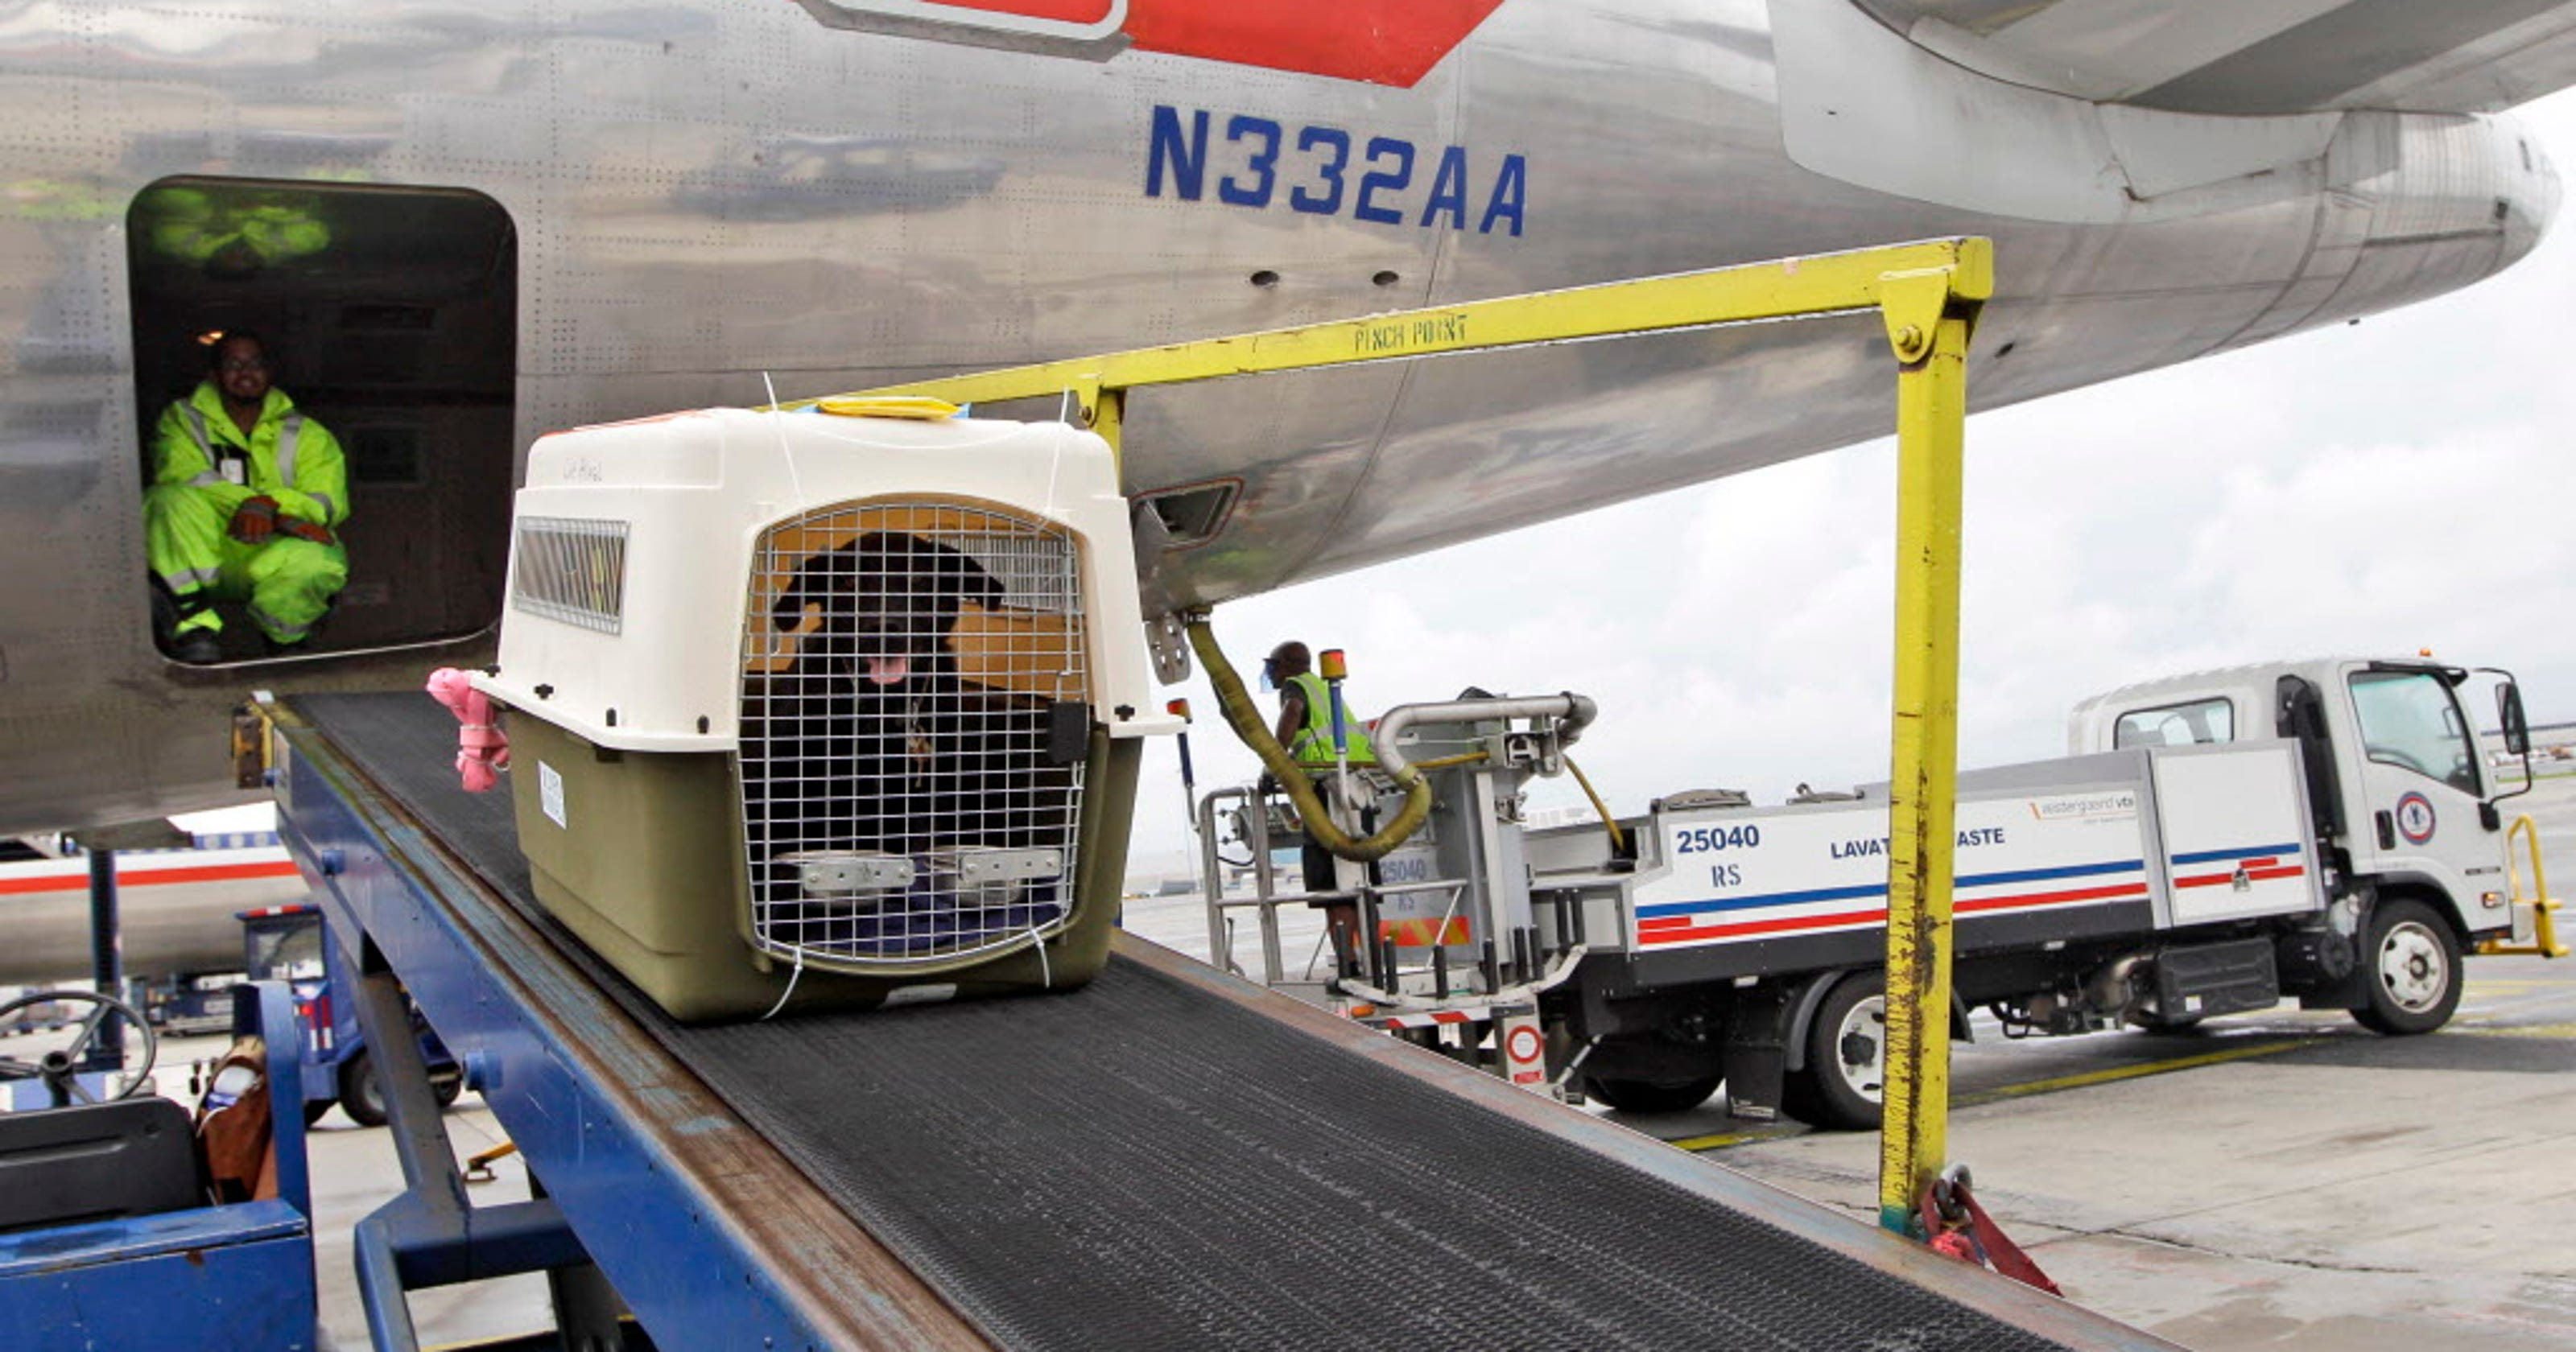 Dot Animal Deaths On Flights Focus On Cargo Not Cabin